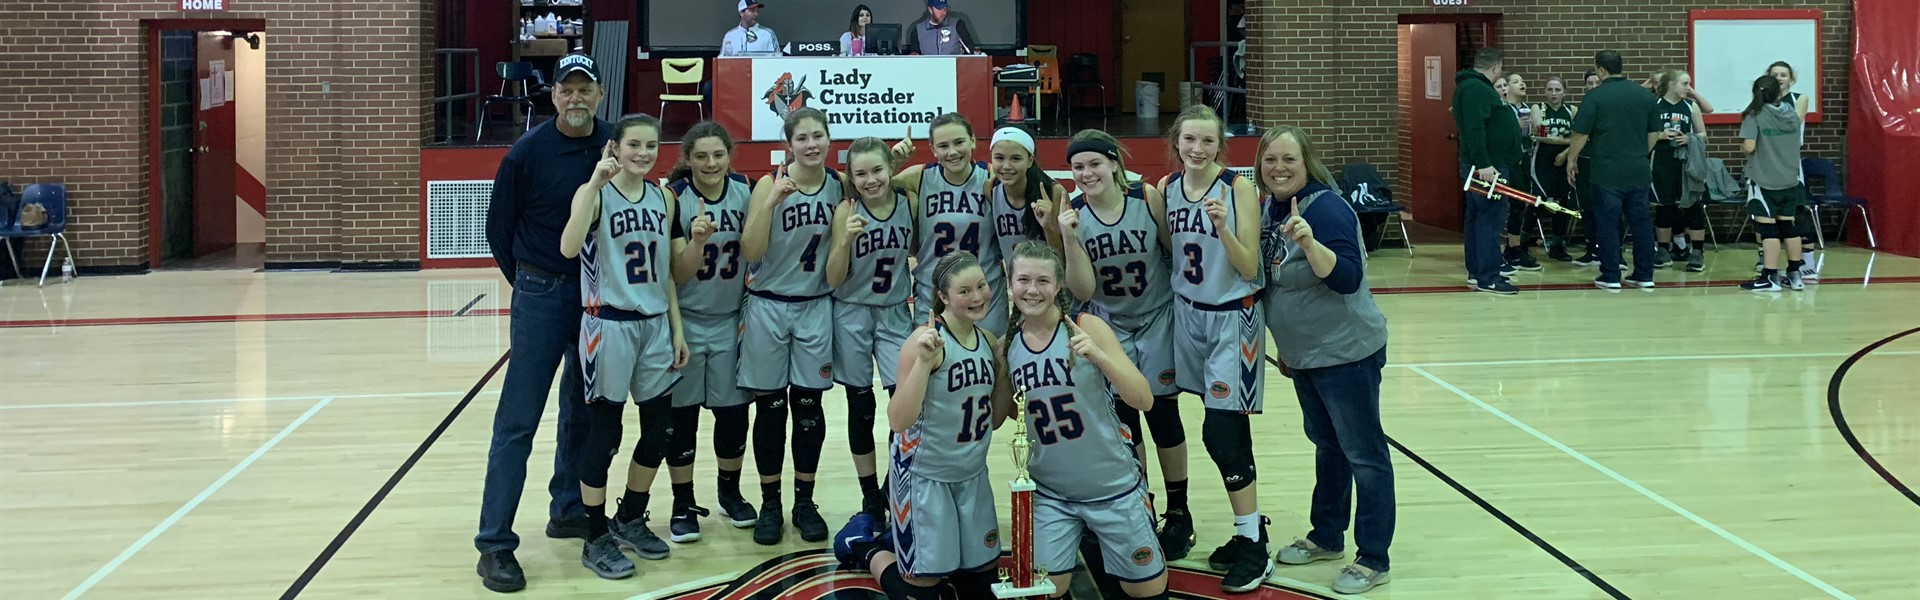 1st Place Lady Crusaders Invitational